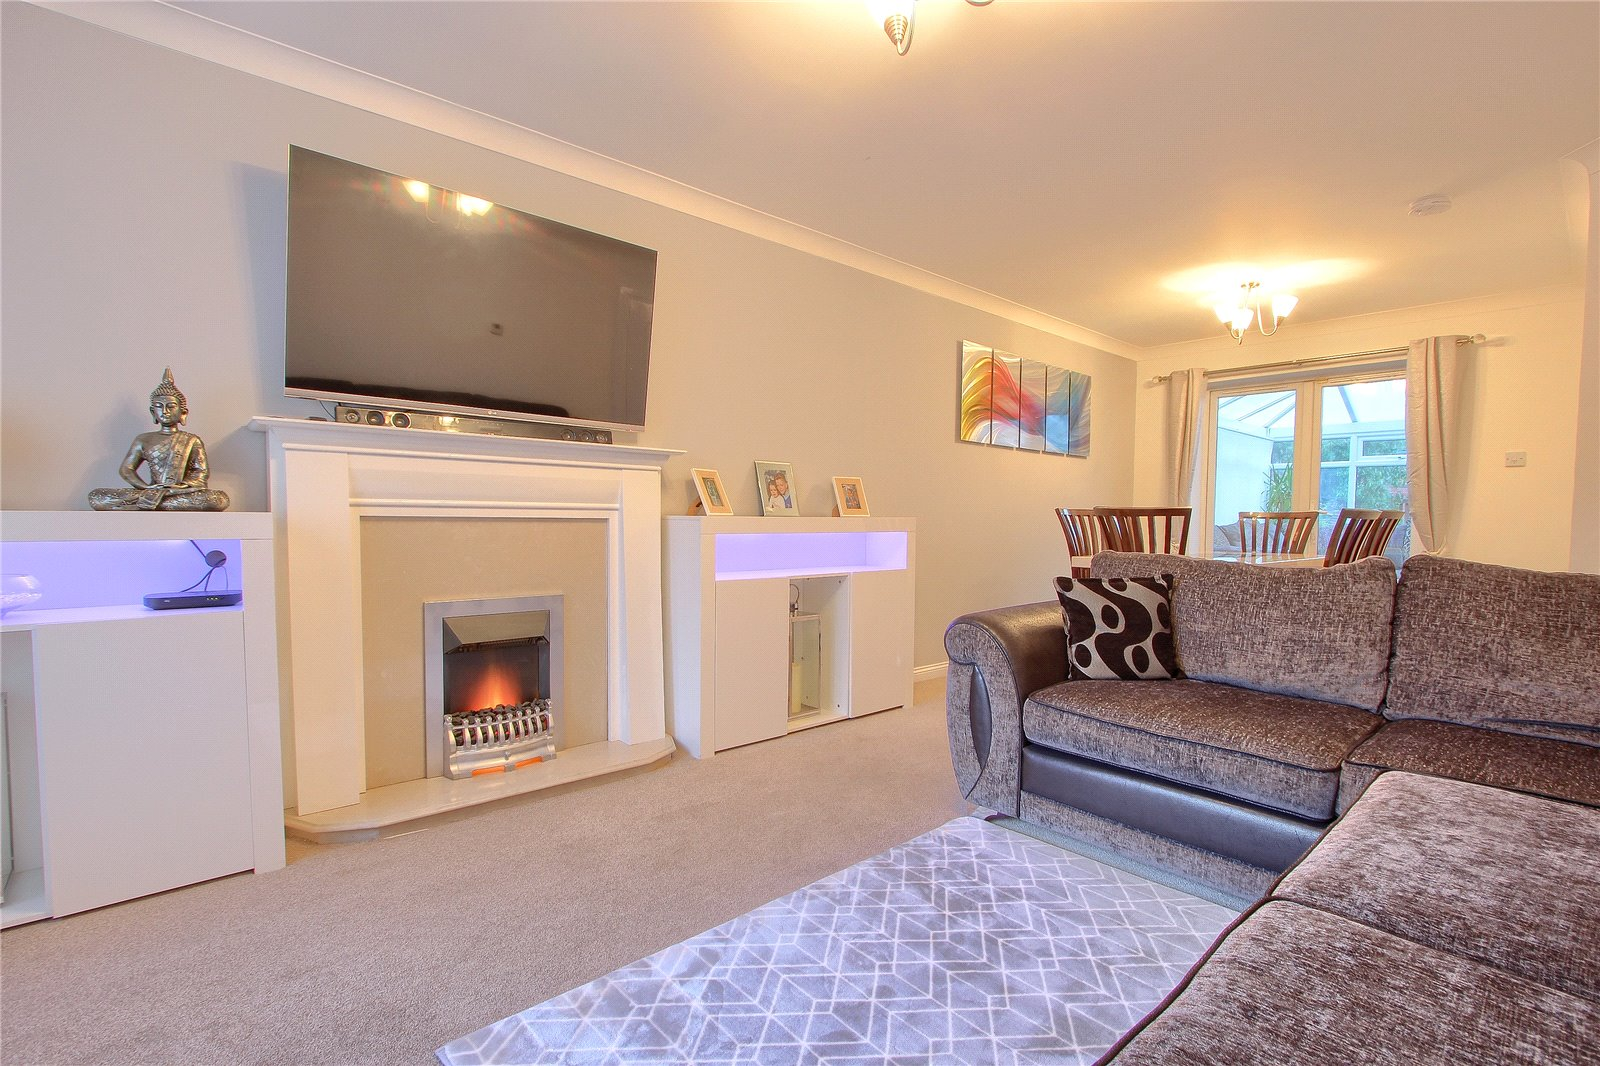 4 bed house for sale in Trevarrian Drive, Redcar  - Property Image 2